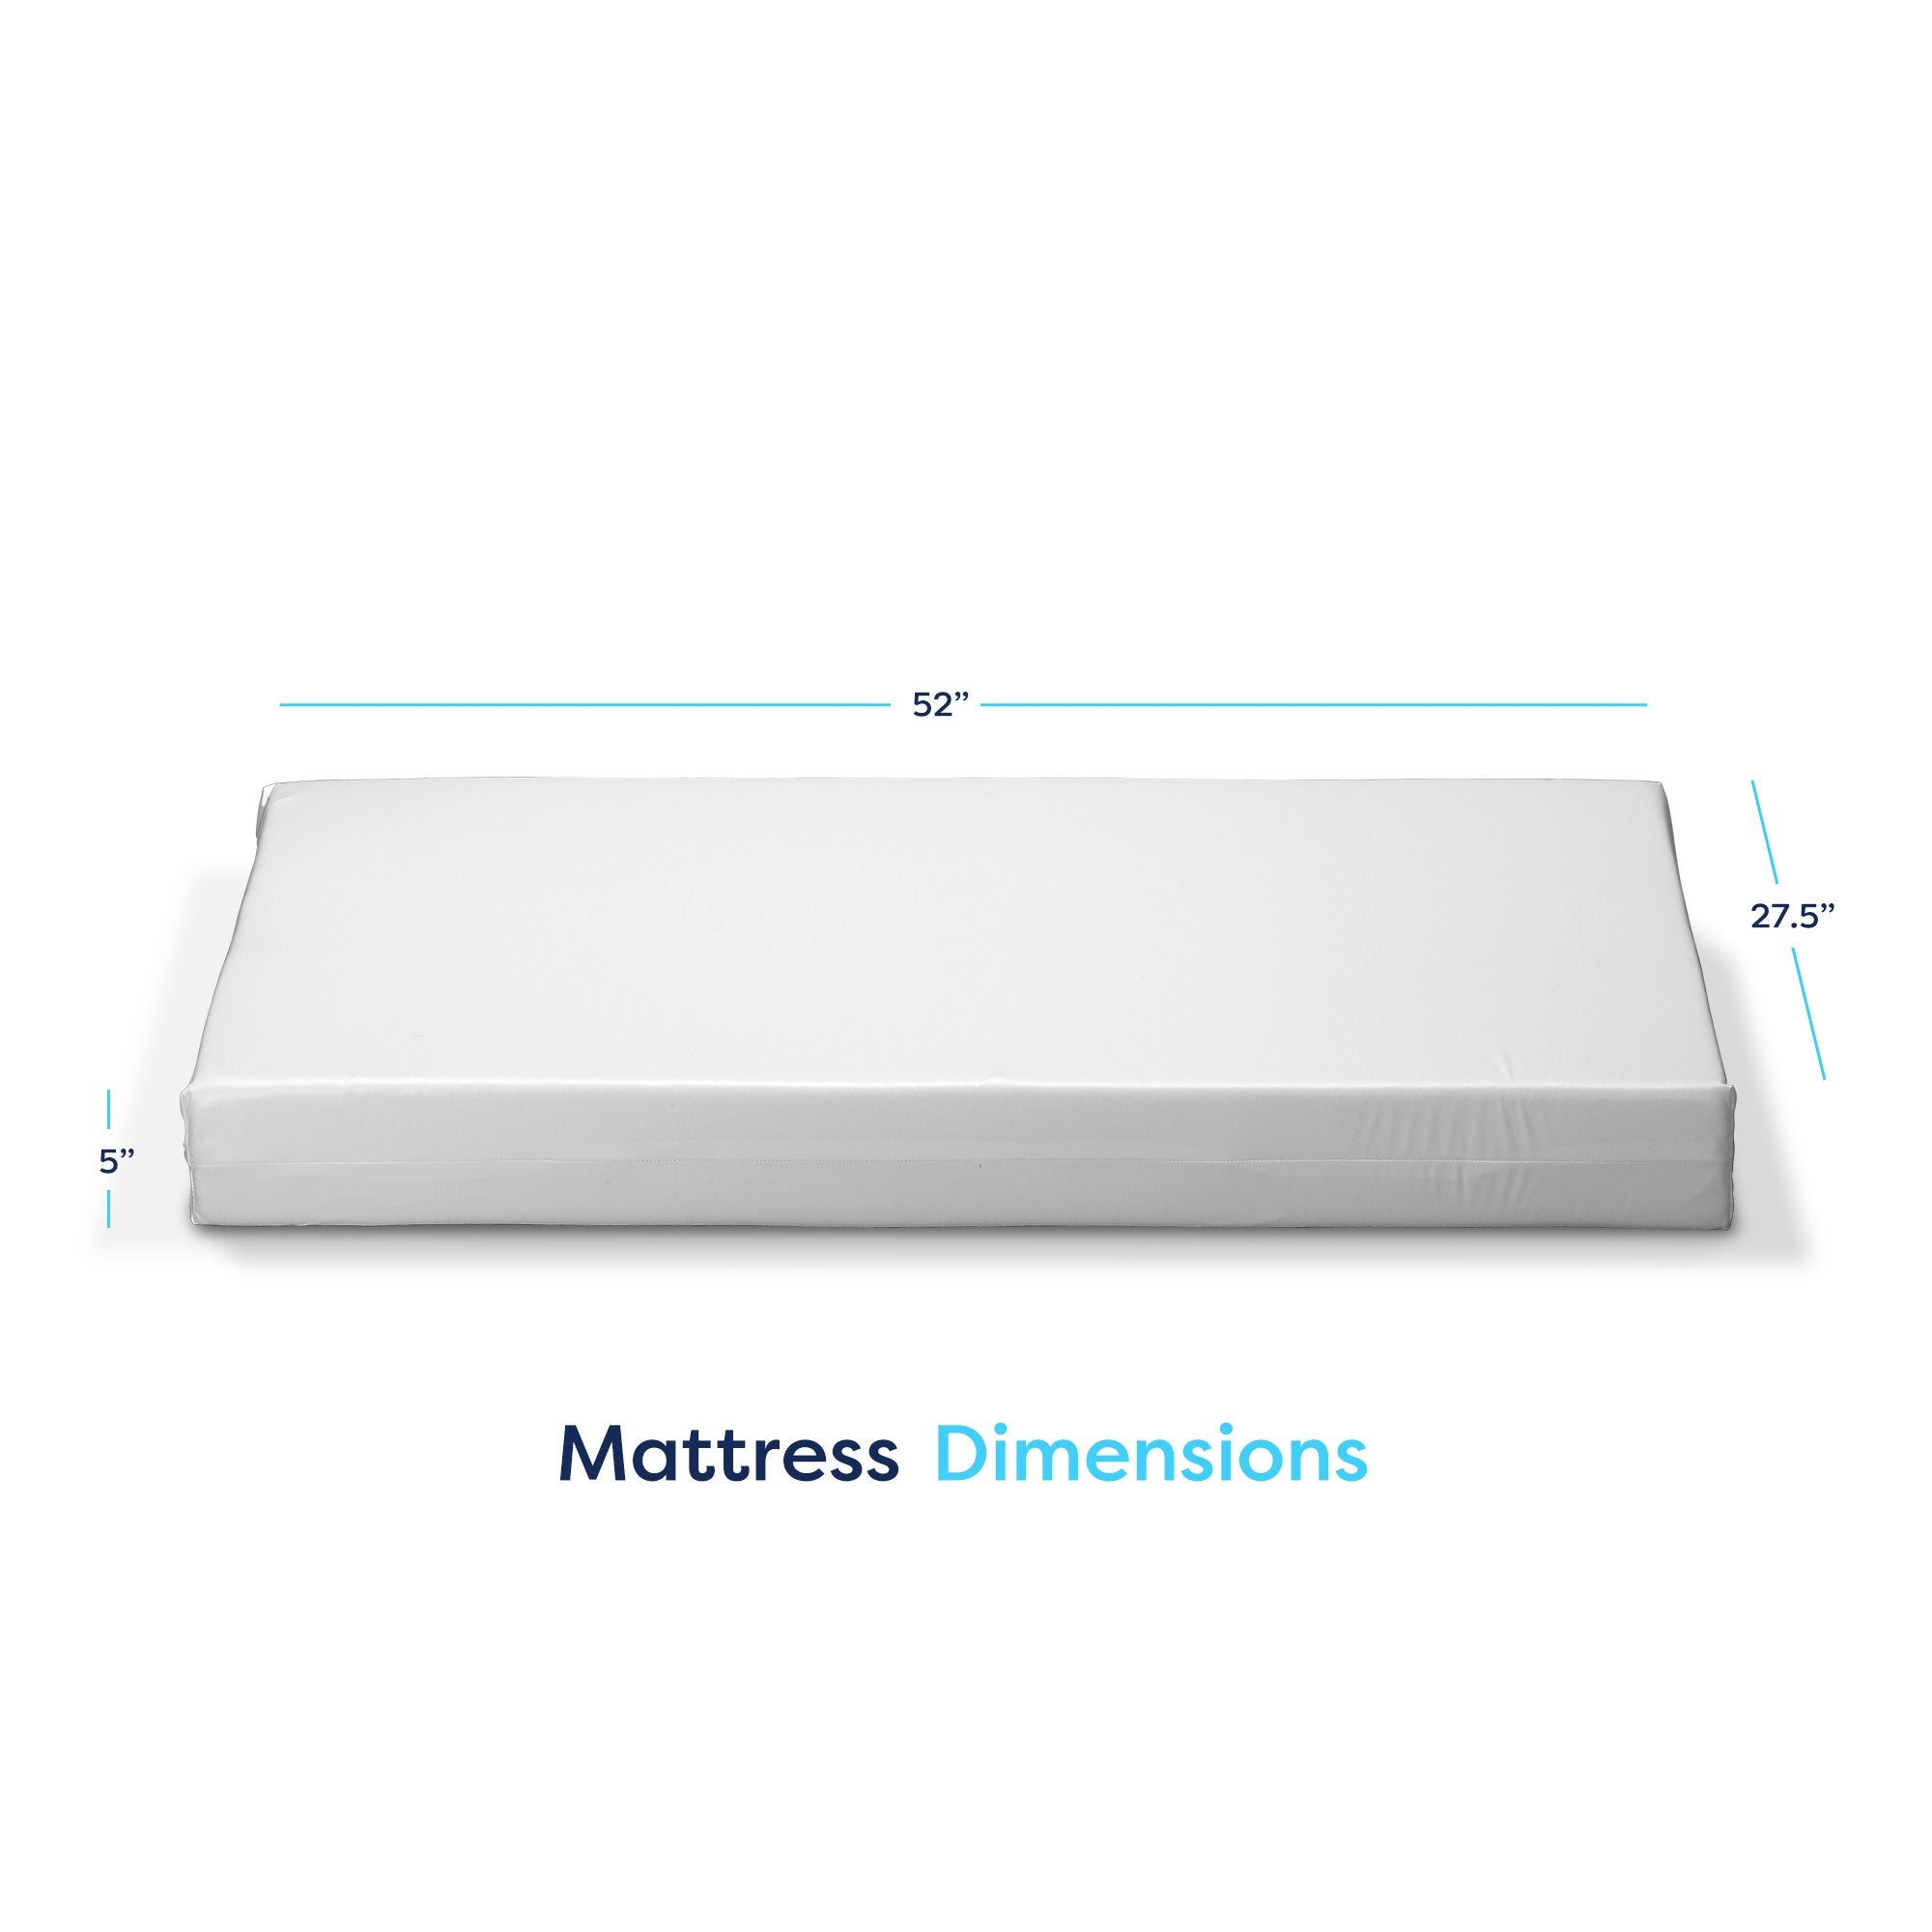 Dimensions for Basic Bluebird Crib Mattress